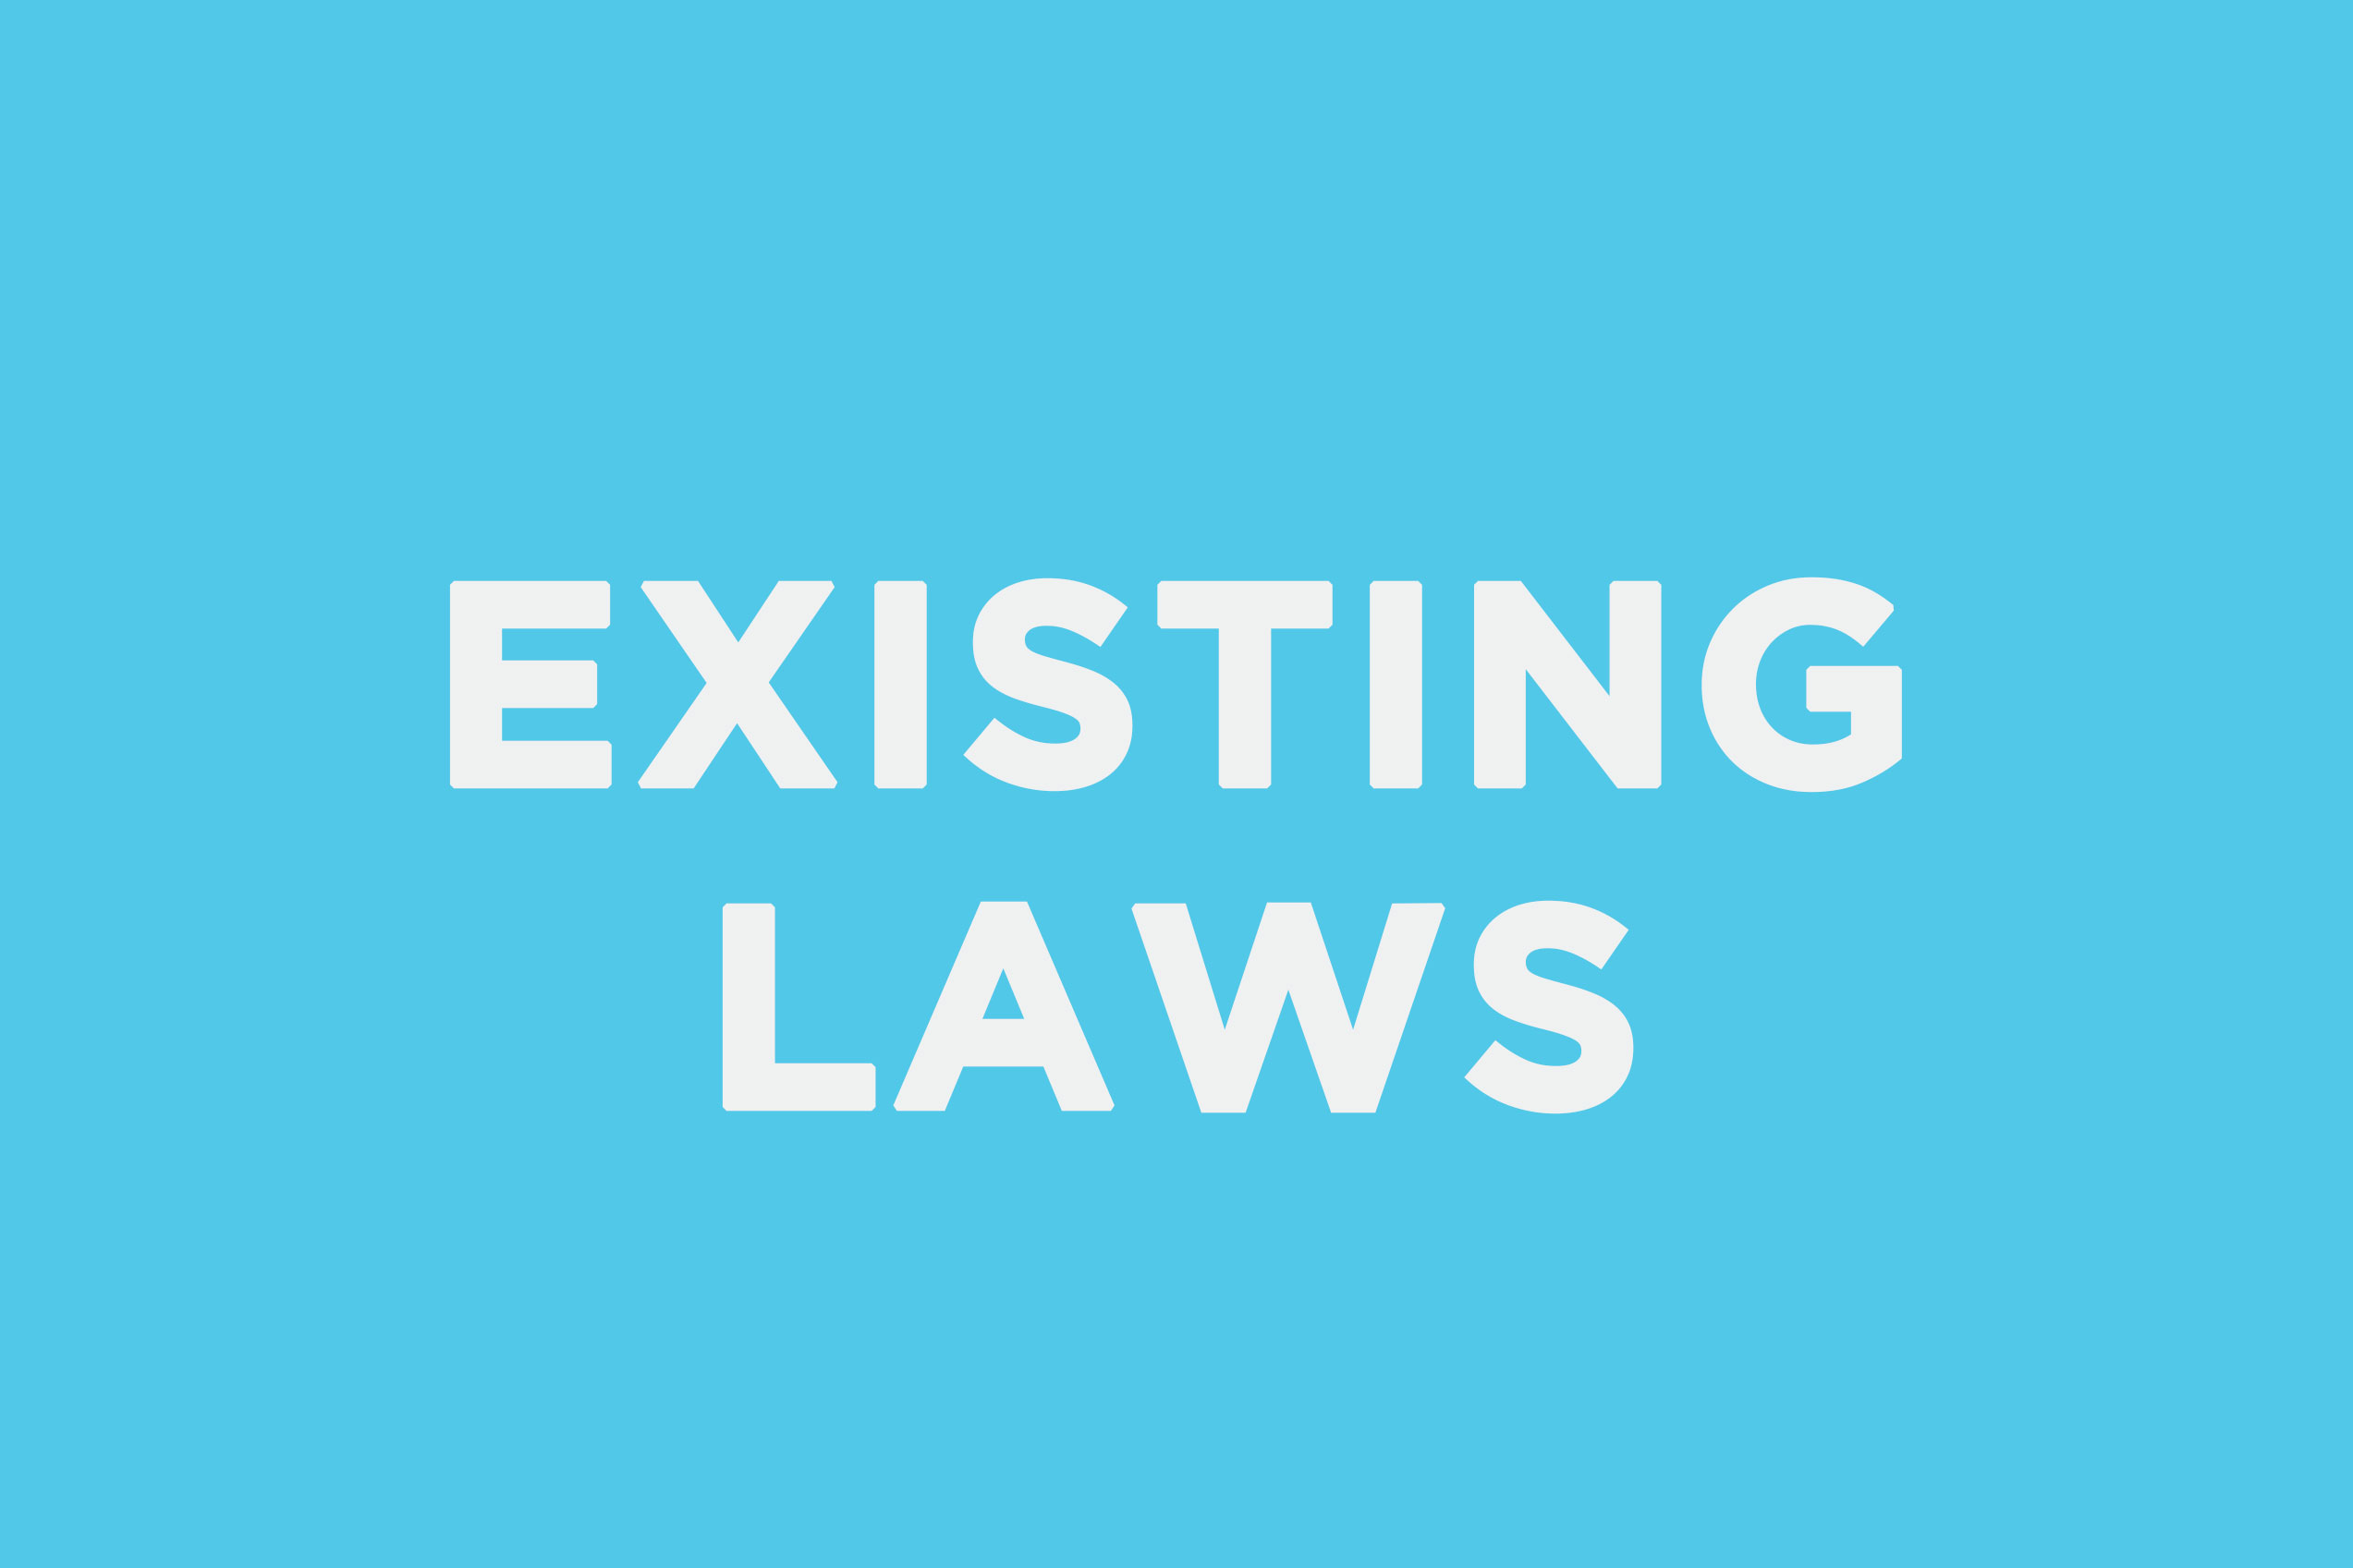 existinglaws